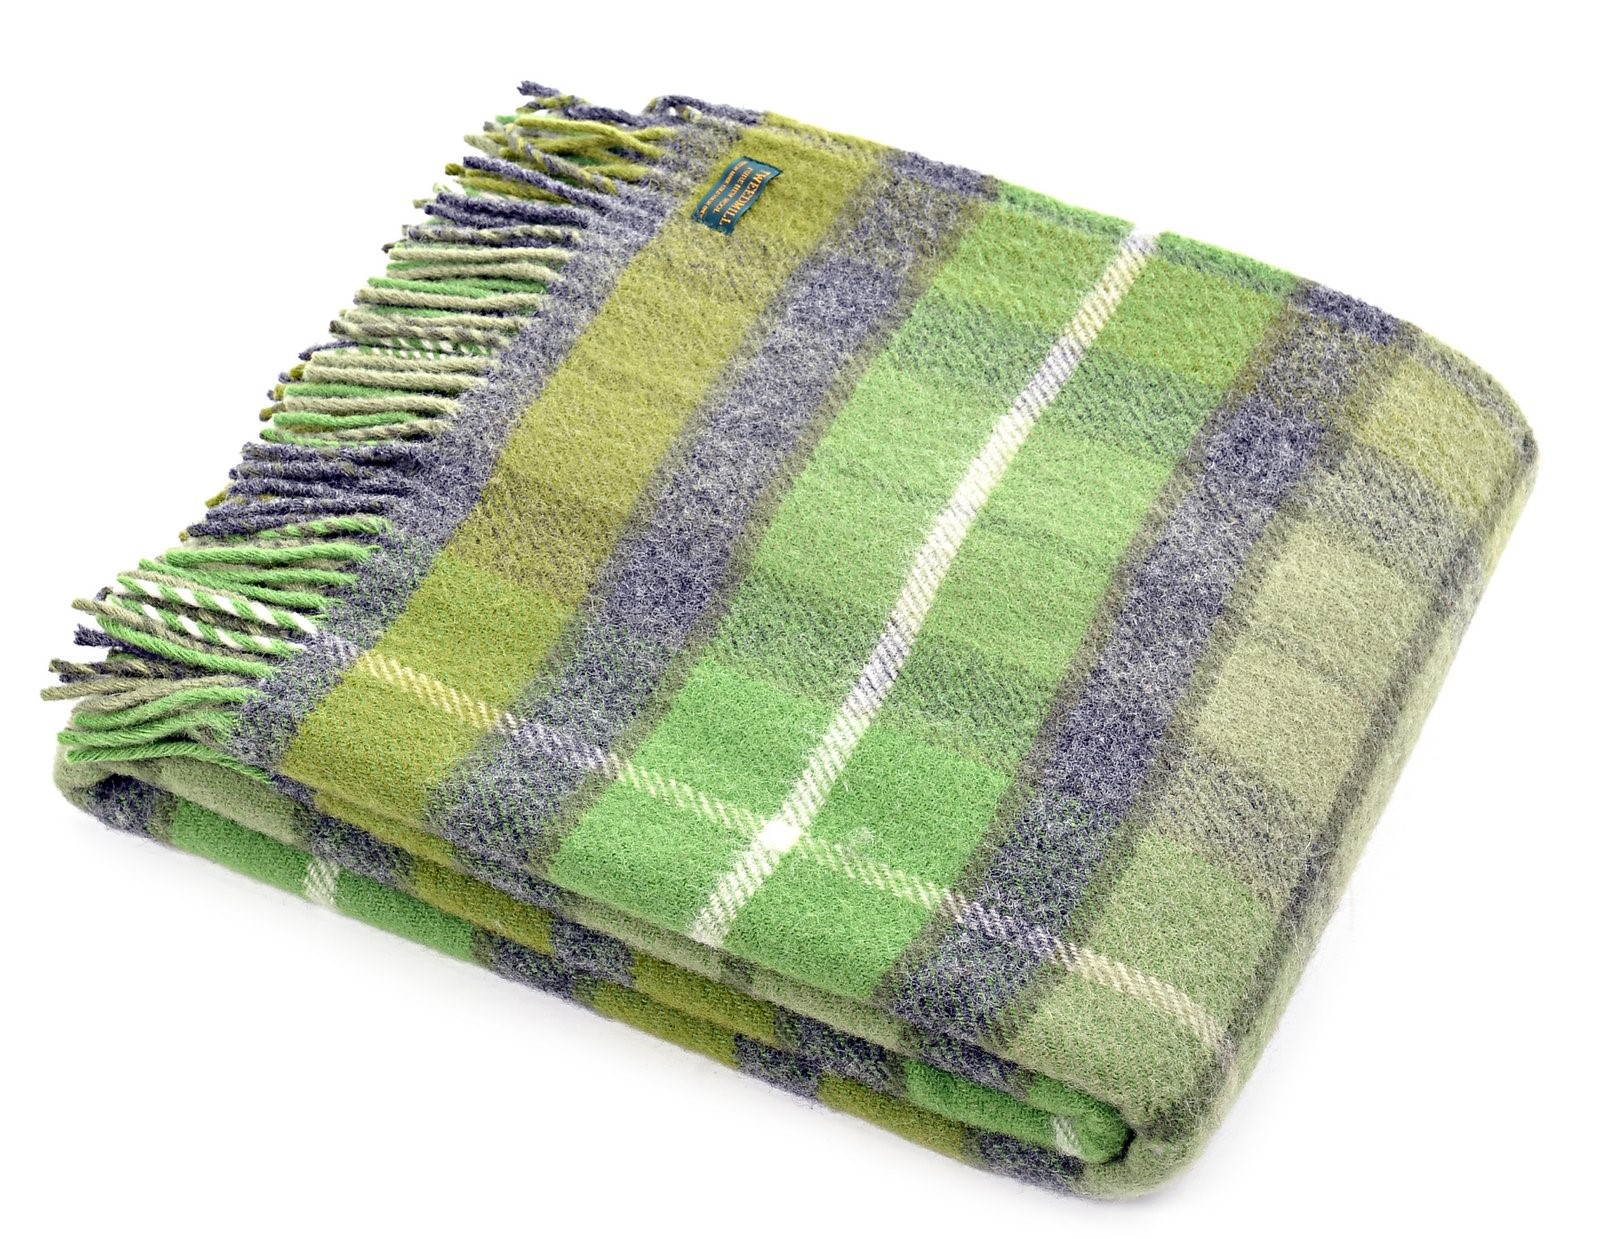 wool blanket online british made gifts classic check wool throw  - wool blanket online british made gifts classic check wool throw  green grey